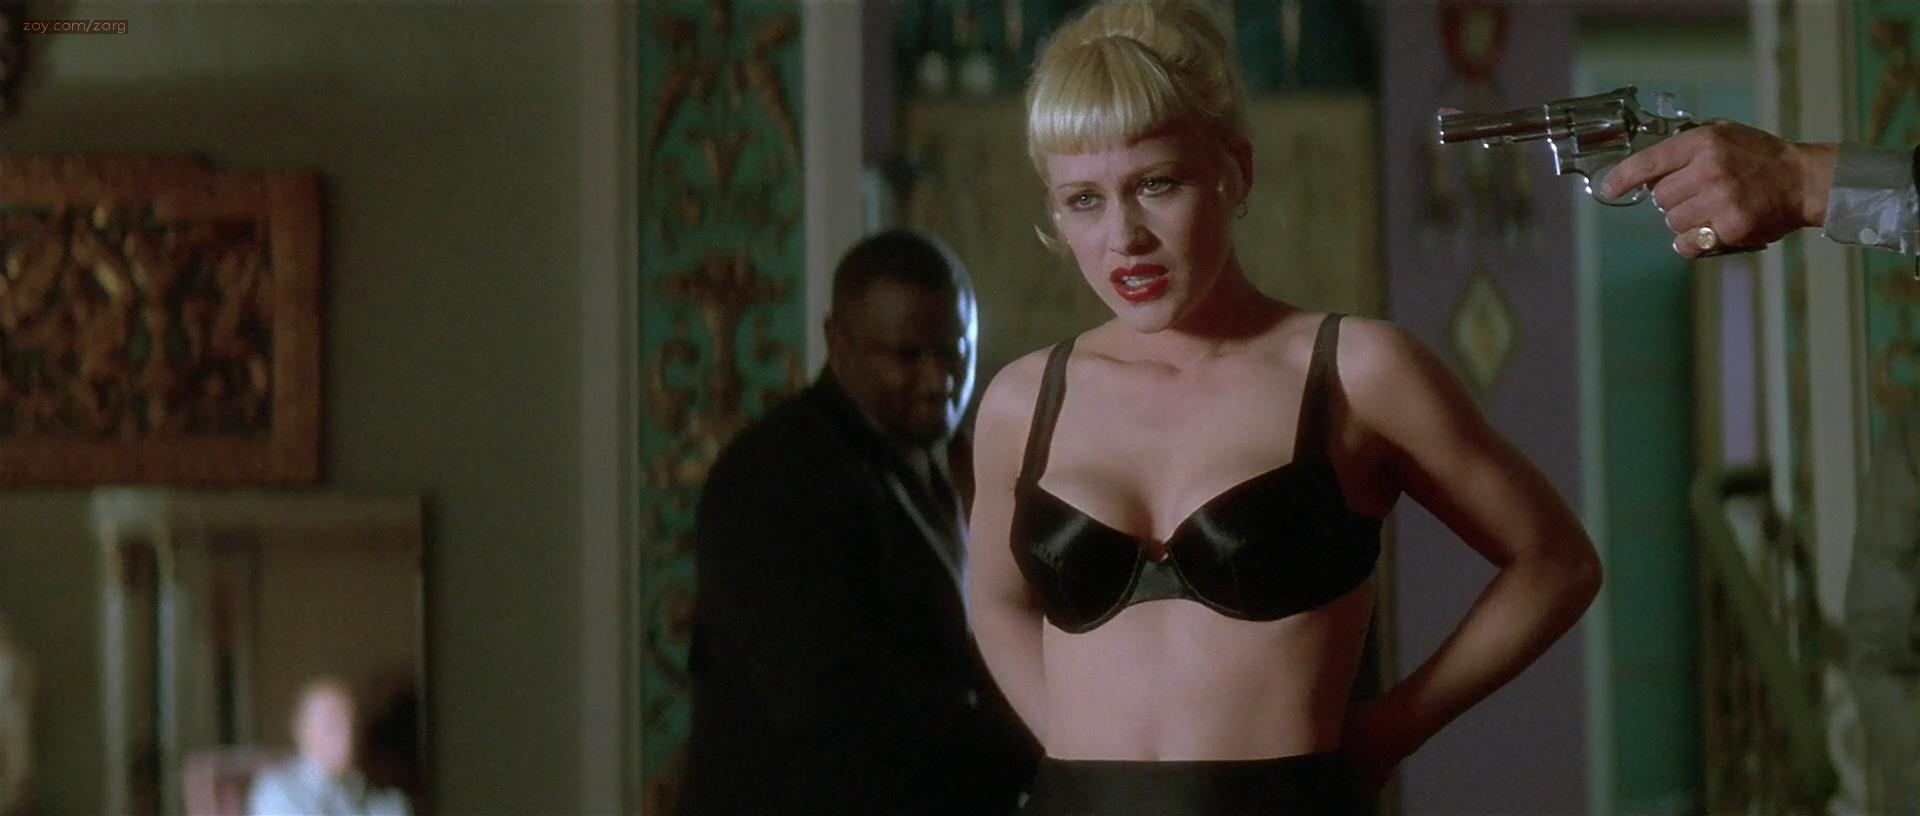 Idea You Patricia arquette nude images Not your